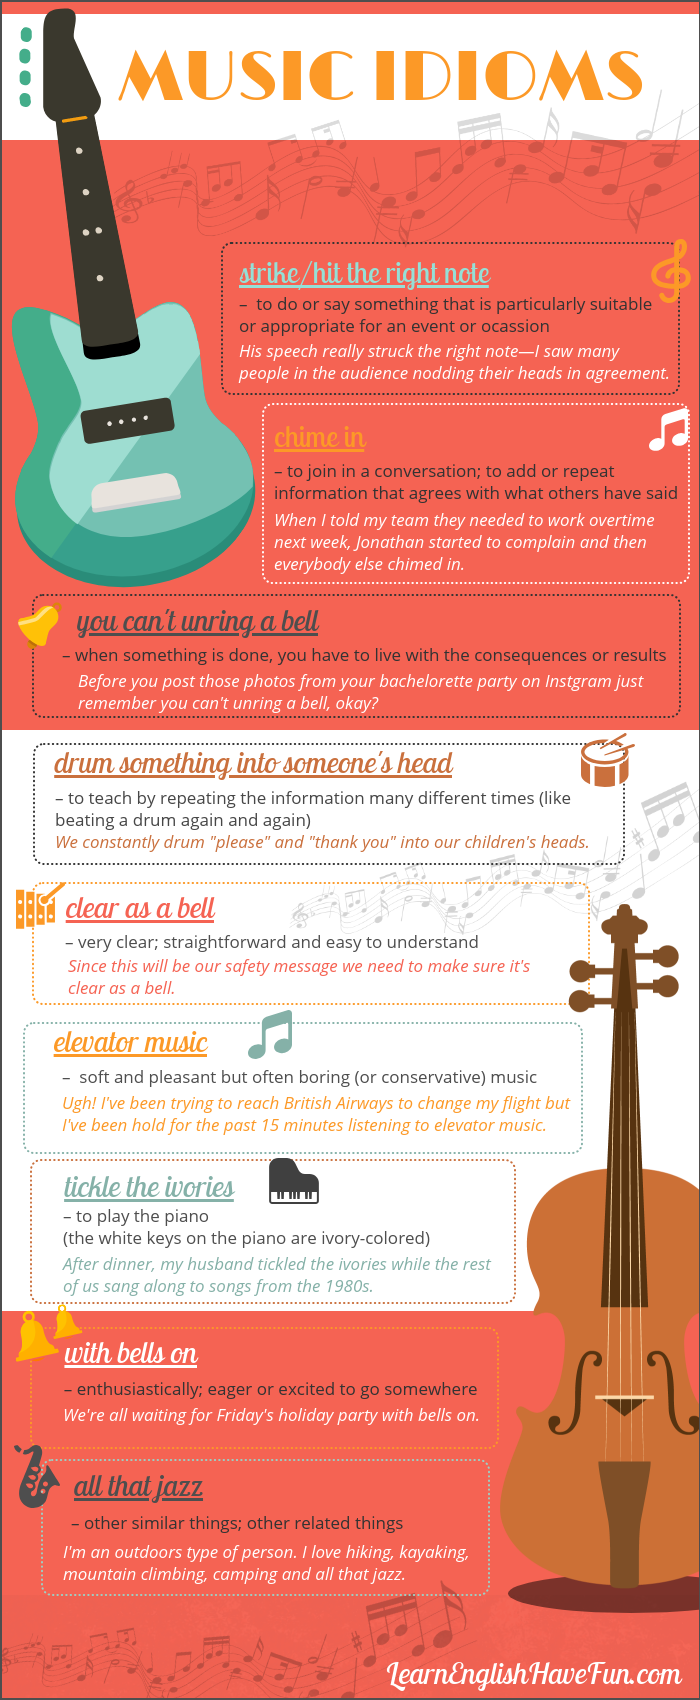 An infographic showing the 10 idioms featured on this webpage with definitions and sentence examples.